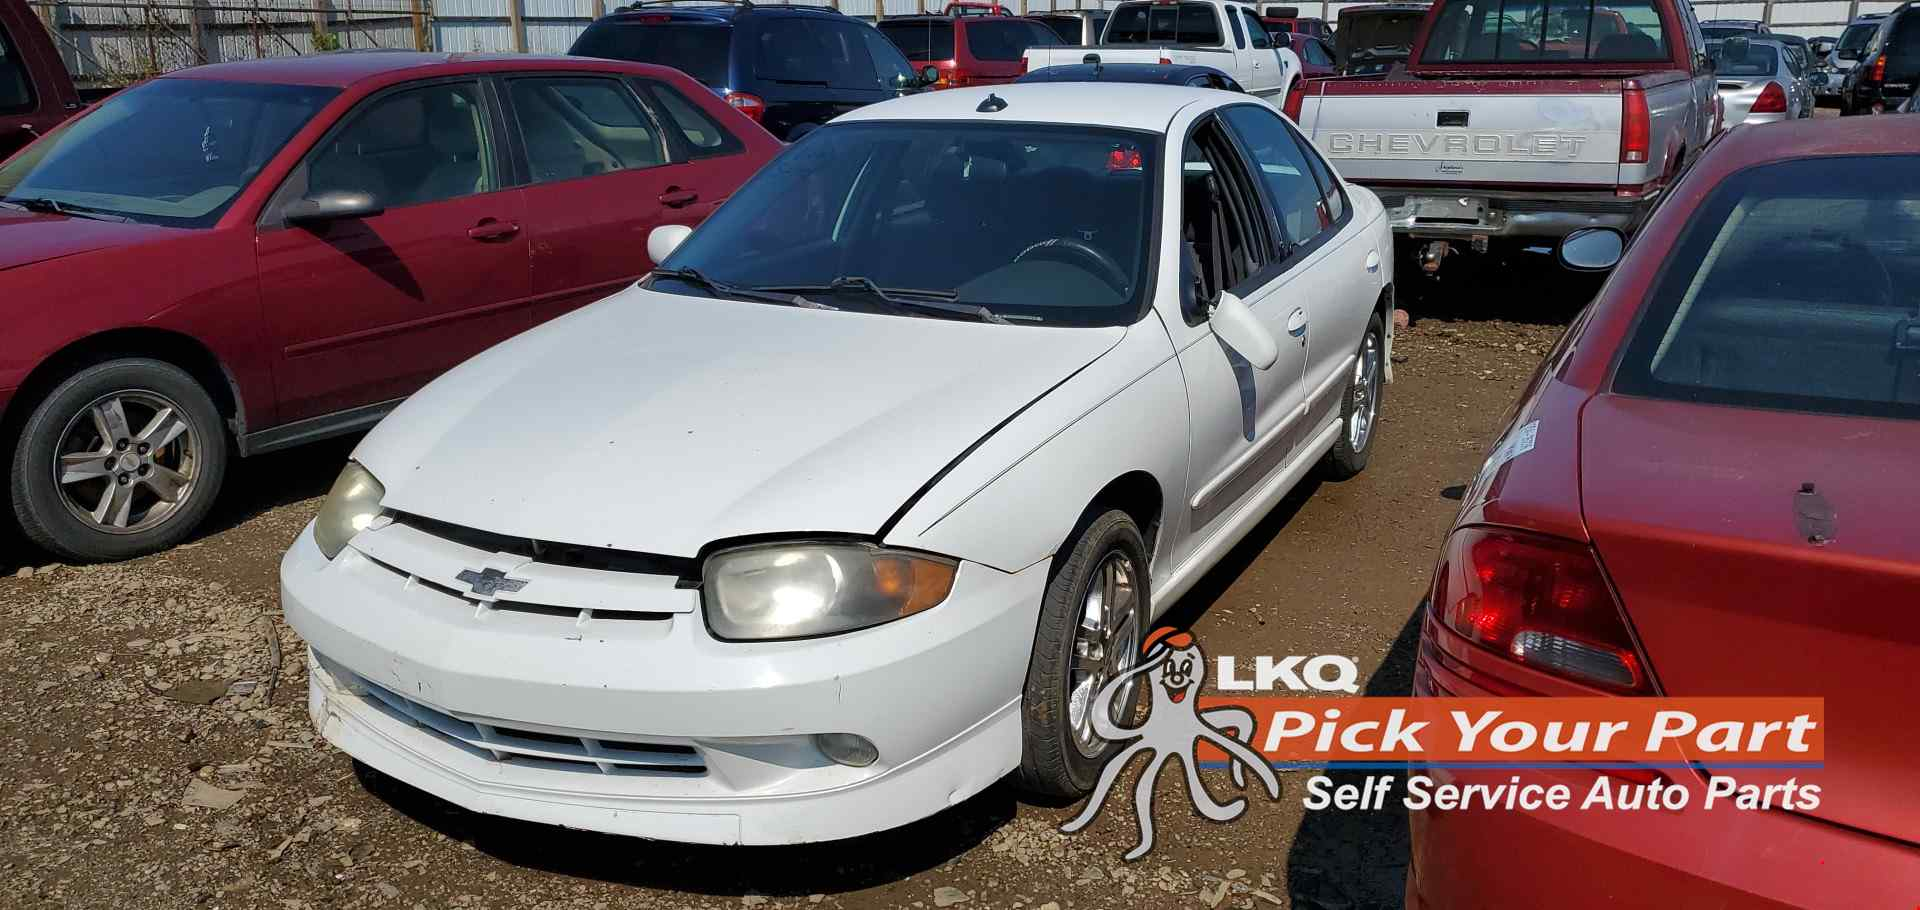 2003 chevrolet cavalier used auto parts lkq pick your part fort wayne lkq pick your part